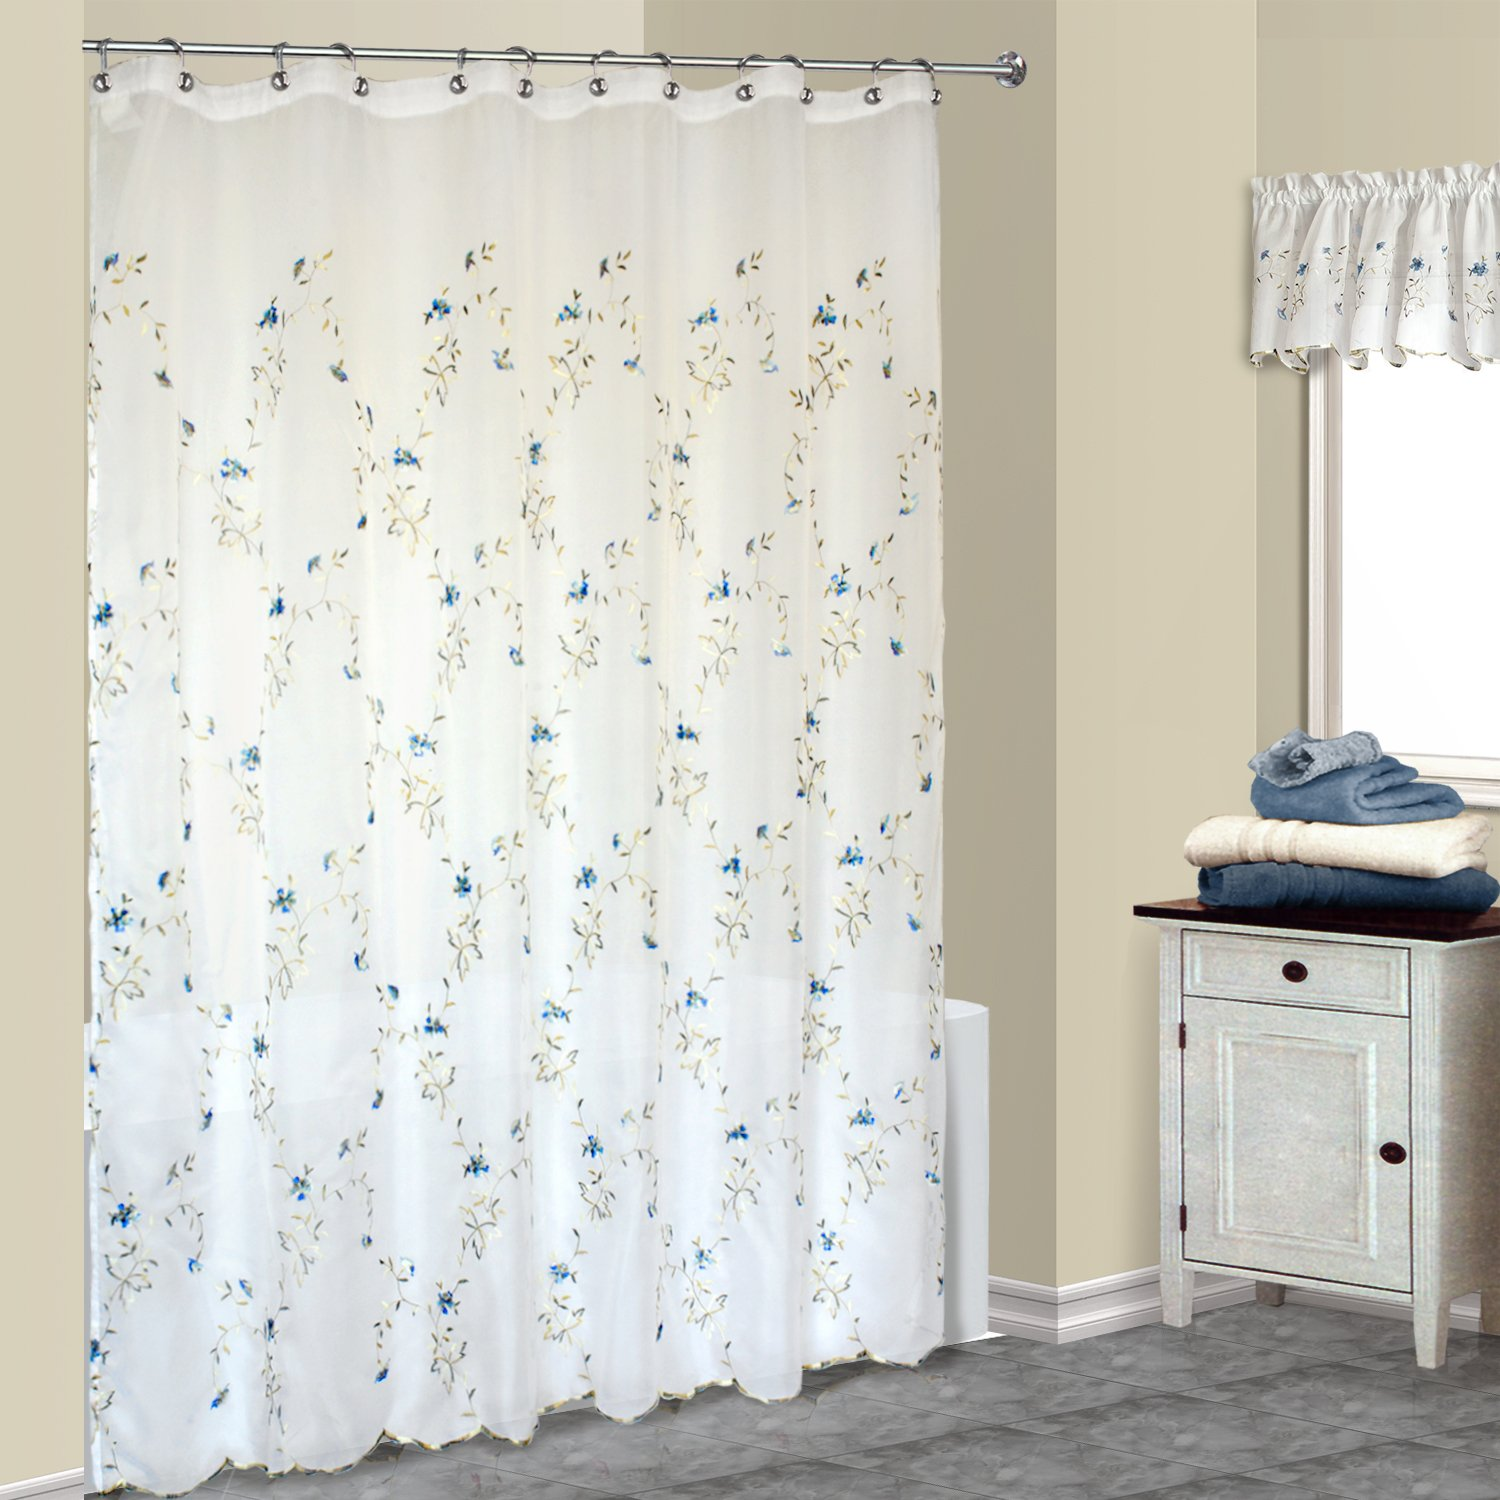 Amazon.com: United Curtain Loretta Shower Curtain, 70 by 72-Inch ...